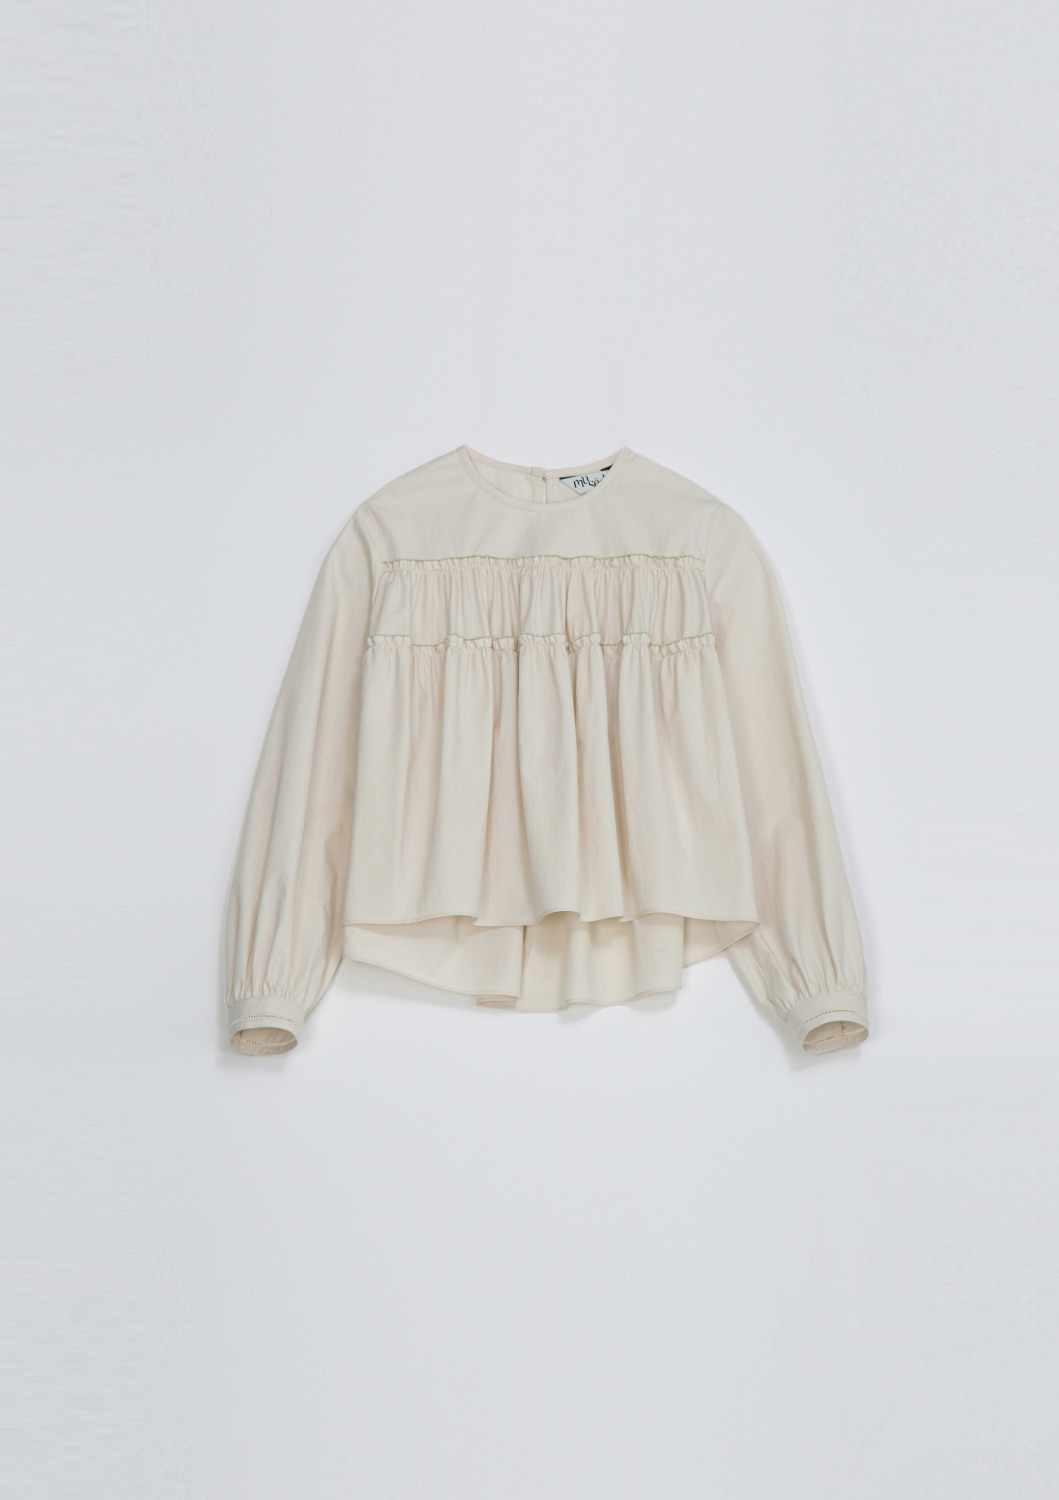 Agreable Tierd Blouse -  Ivory Cotton